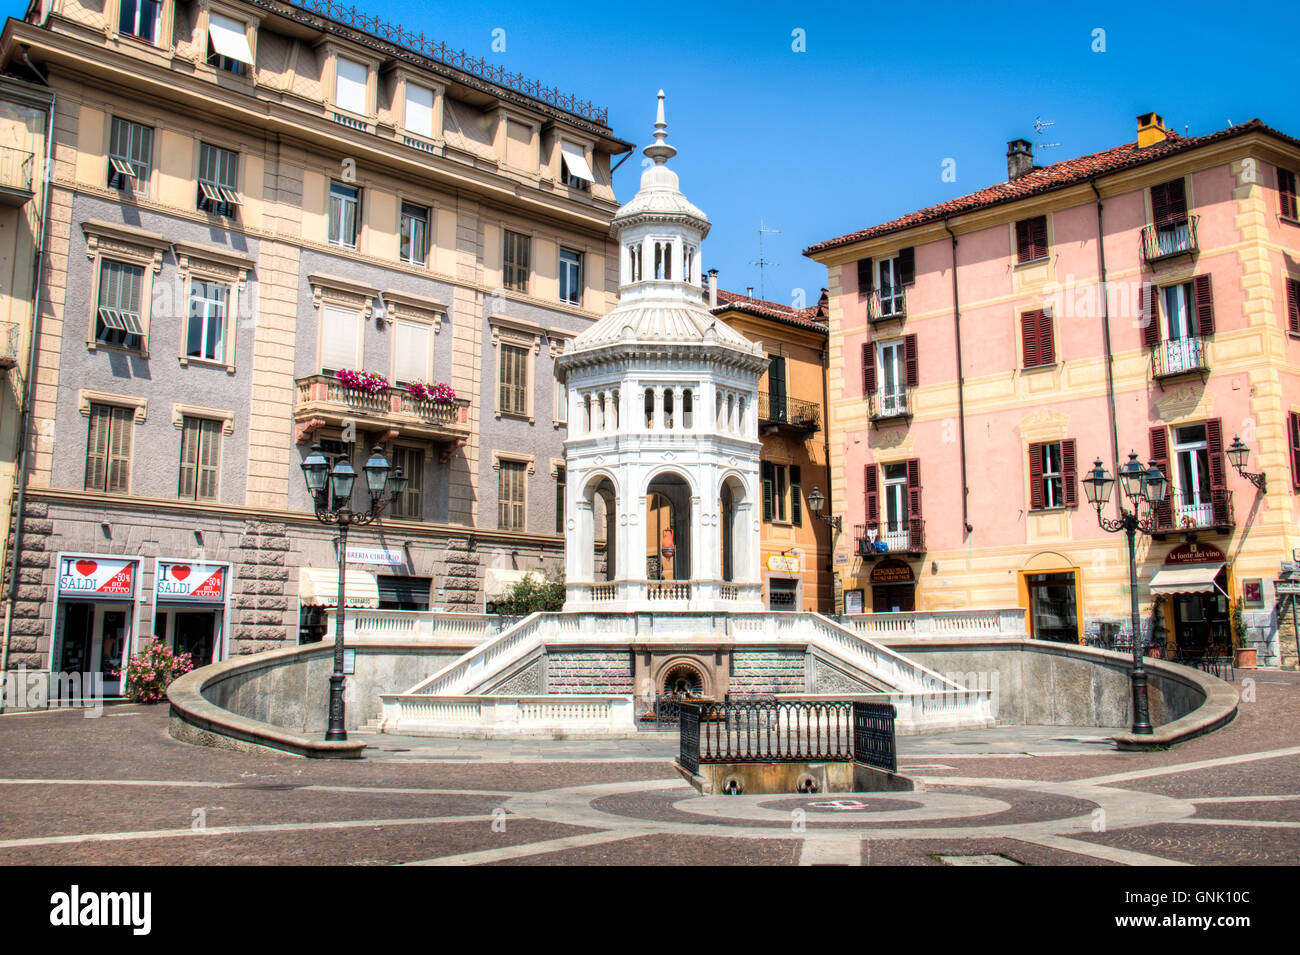 ACQUI TERME, ITALY - JULY 2016: The main square with fountain in Acqui Terme, Italy - Stock Image